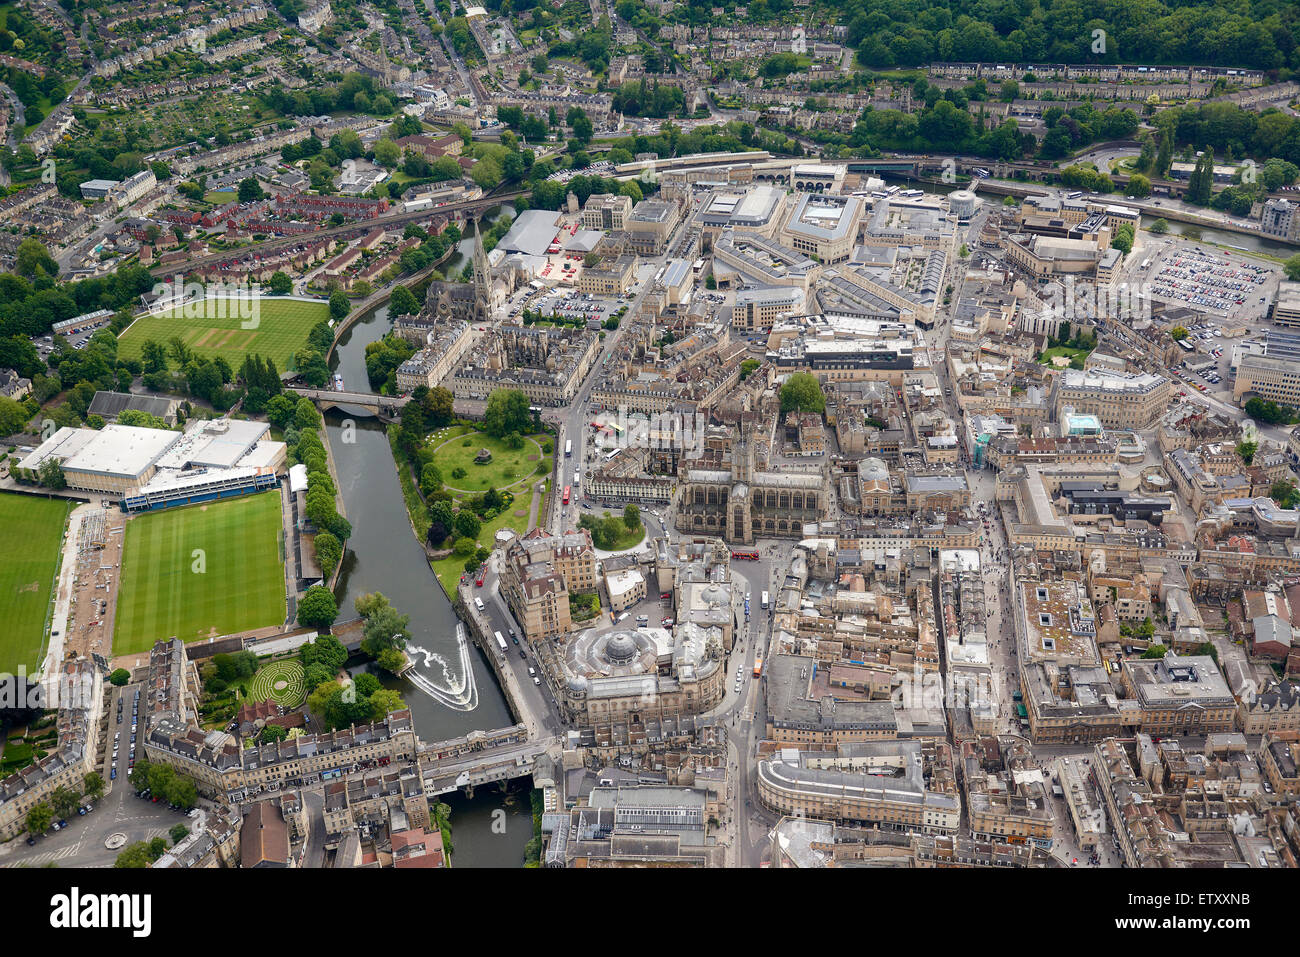 City of Bath, from the air, South West England, UK - Stock Image